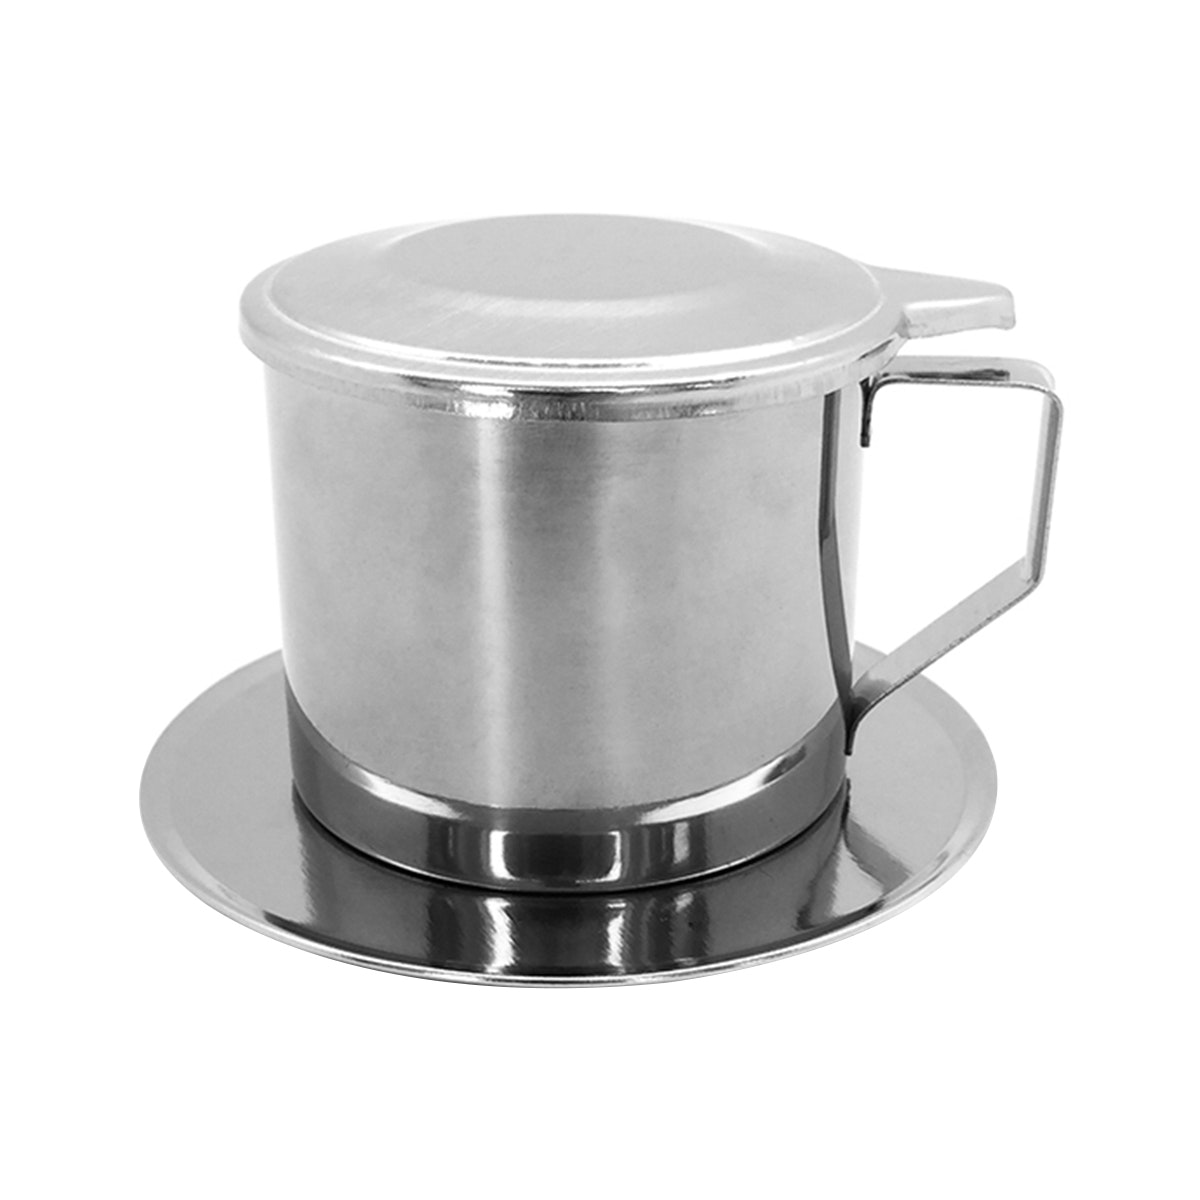 Cookmaster Manual Coffee Dripper 200 ml